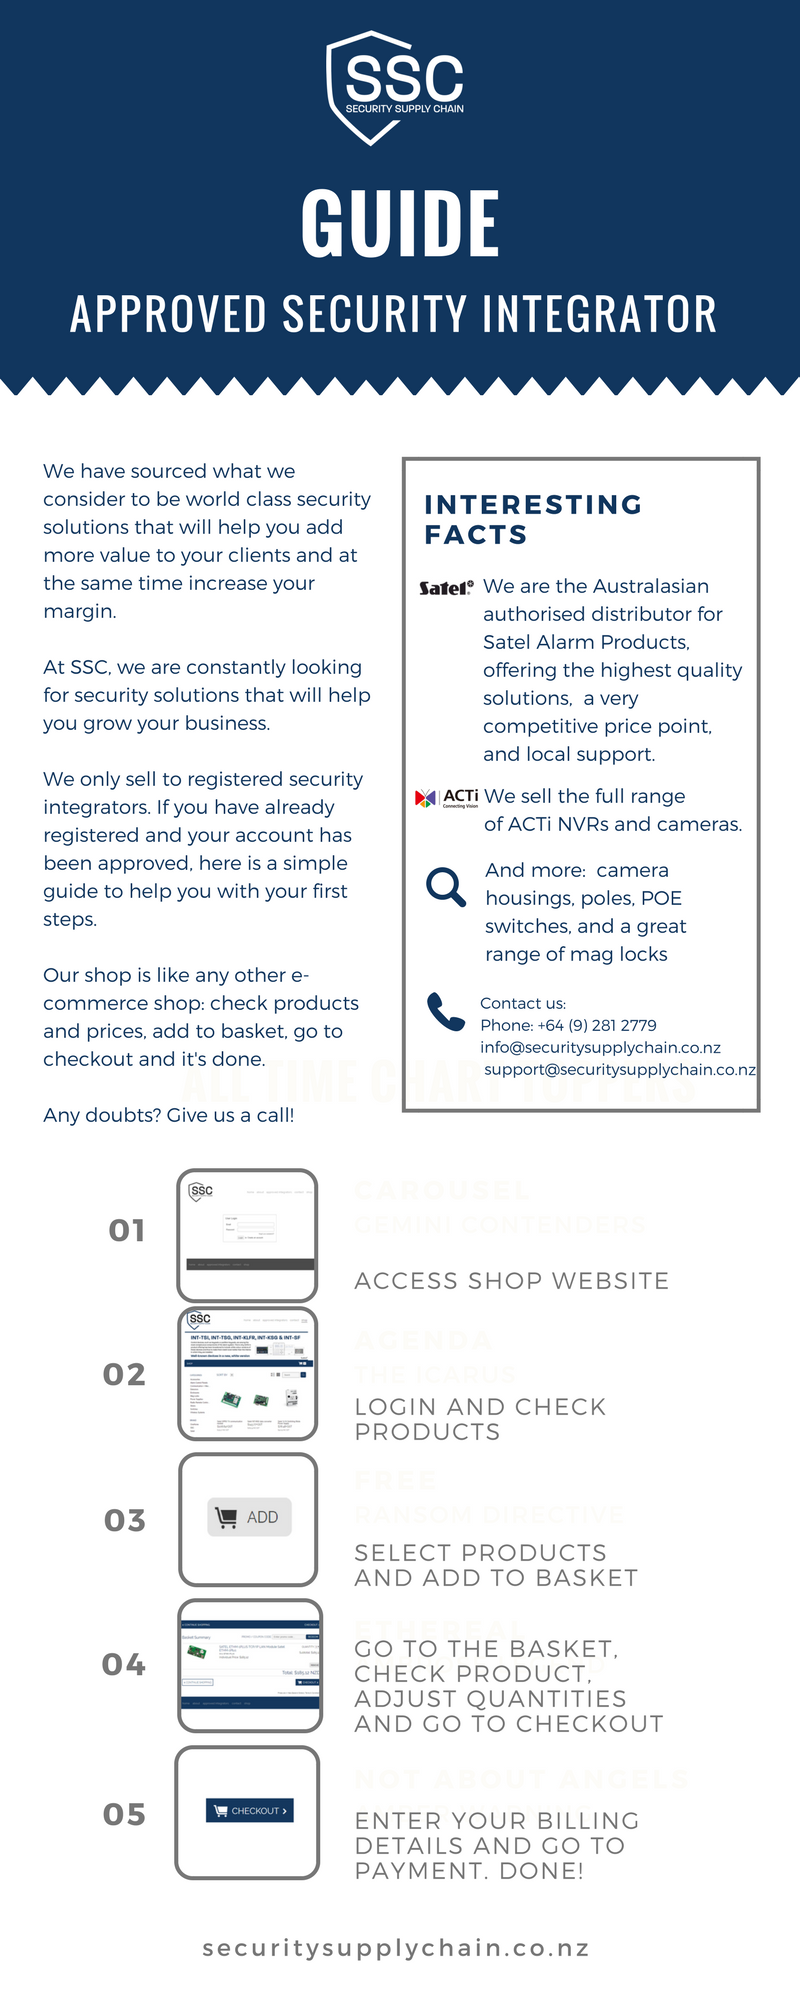 Security Supply Chain Guide To Shop SSC